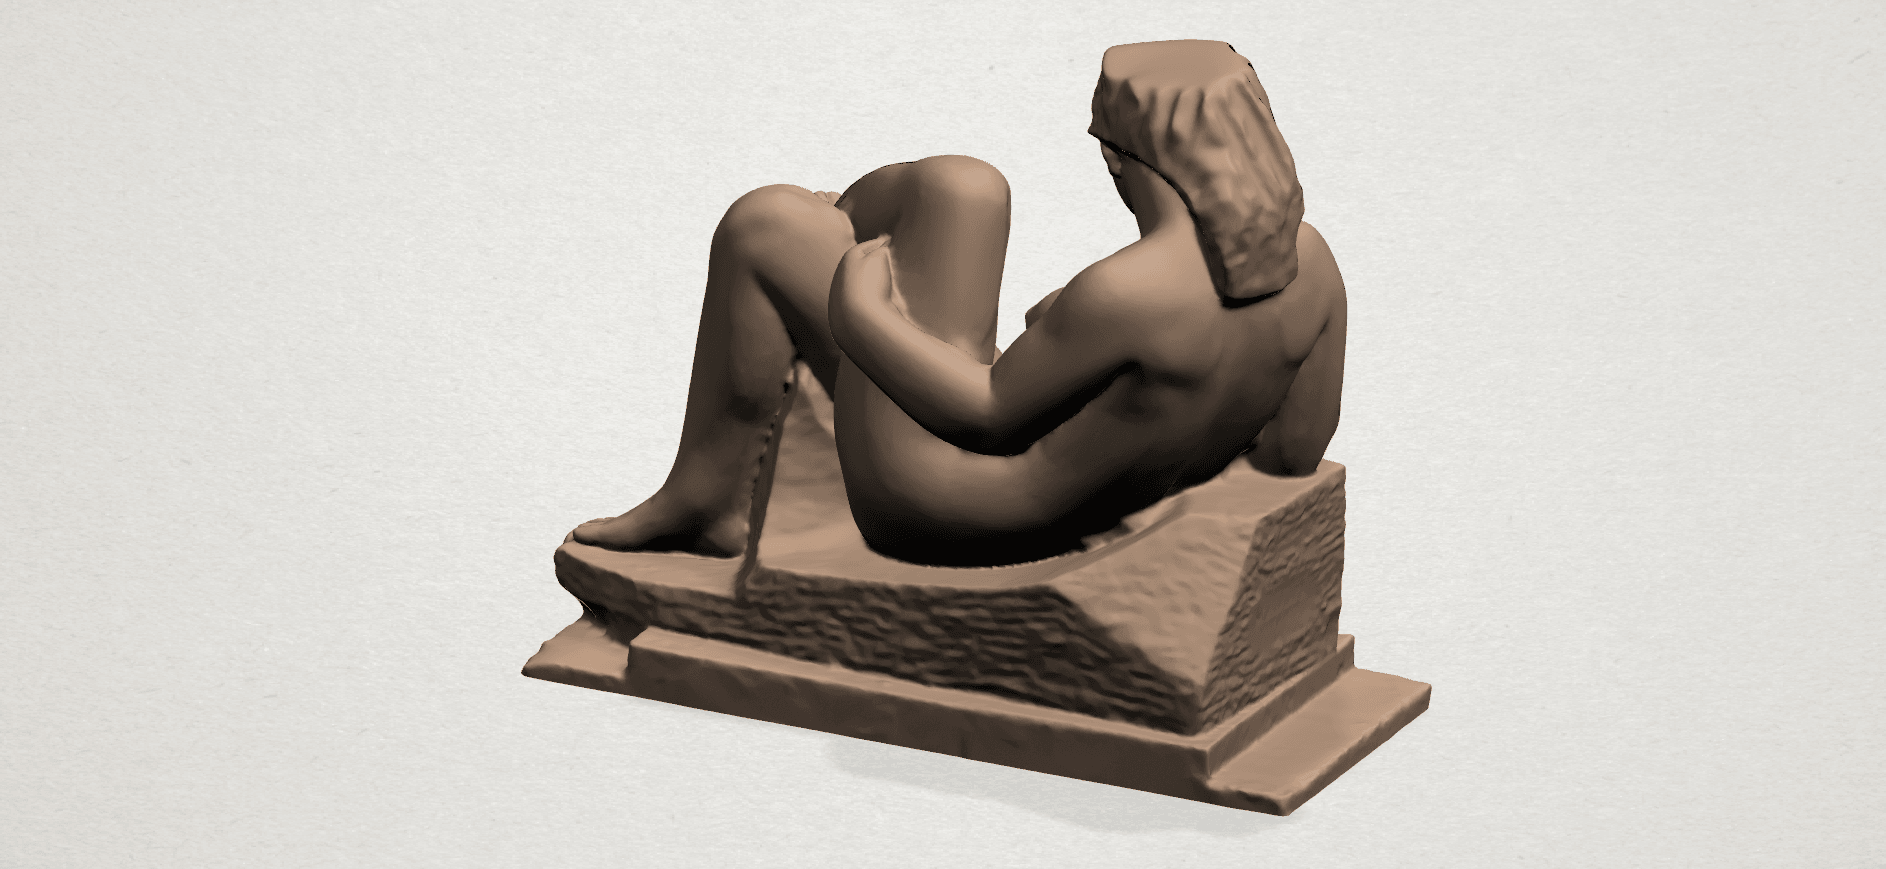 Naked Girl (xiii) A04.png Download free STL file Naked Girl 13 • 3D print design, GeorgesNikkei